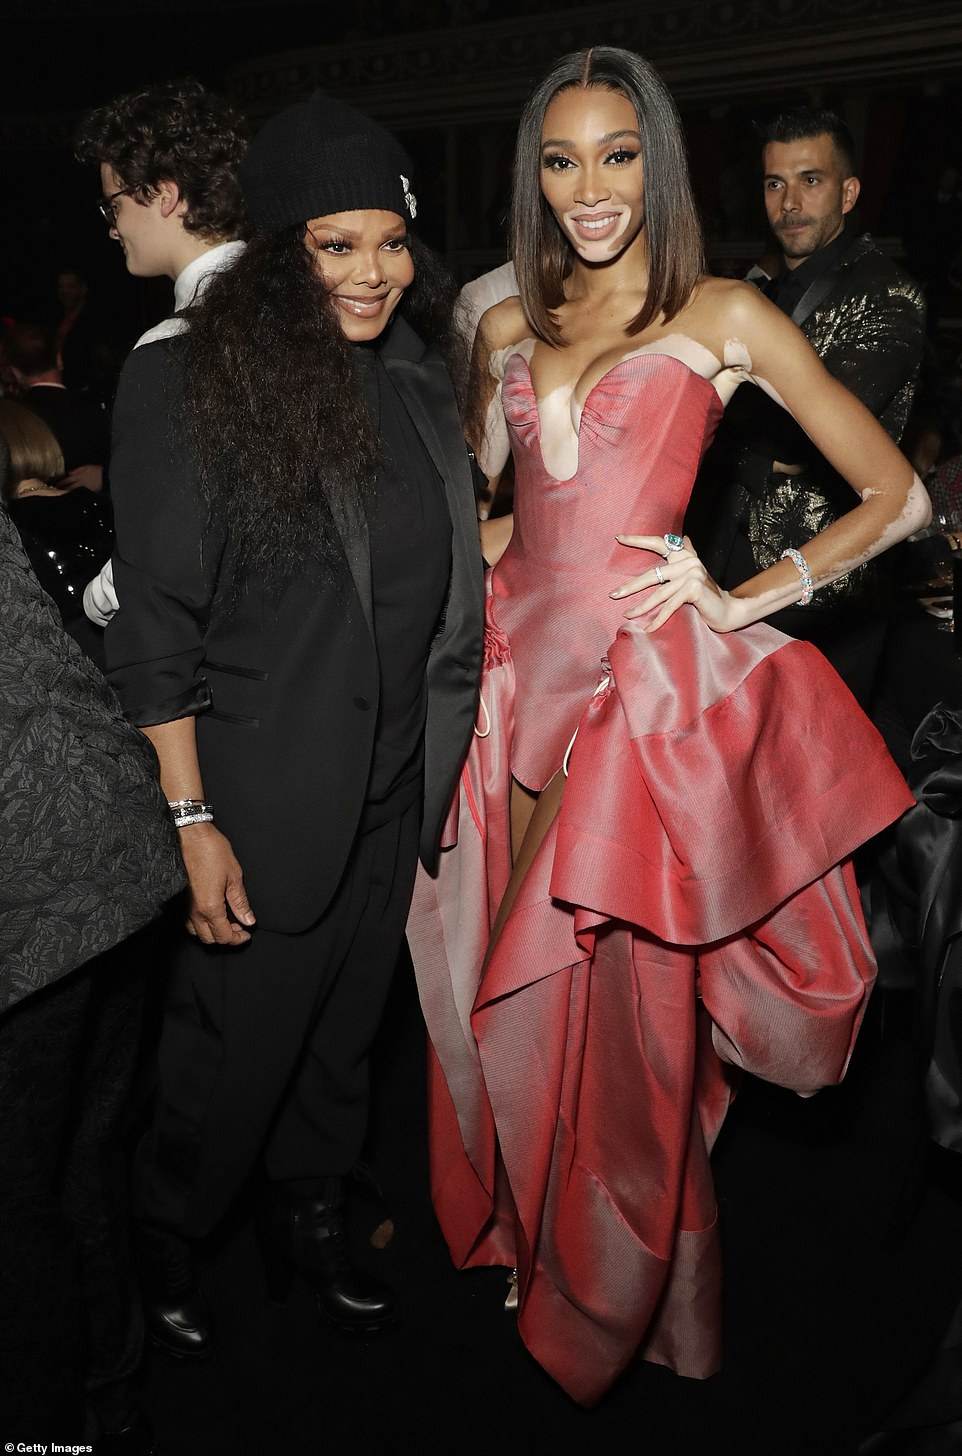 Catching up: Janet Jackson made a surprise appearance at the event alongside Winnie Harlow, who donned David Morris jewellery and a gown by Andreas Kronthaler for Vivienne Westwood for the event